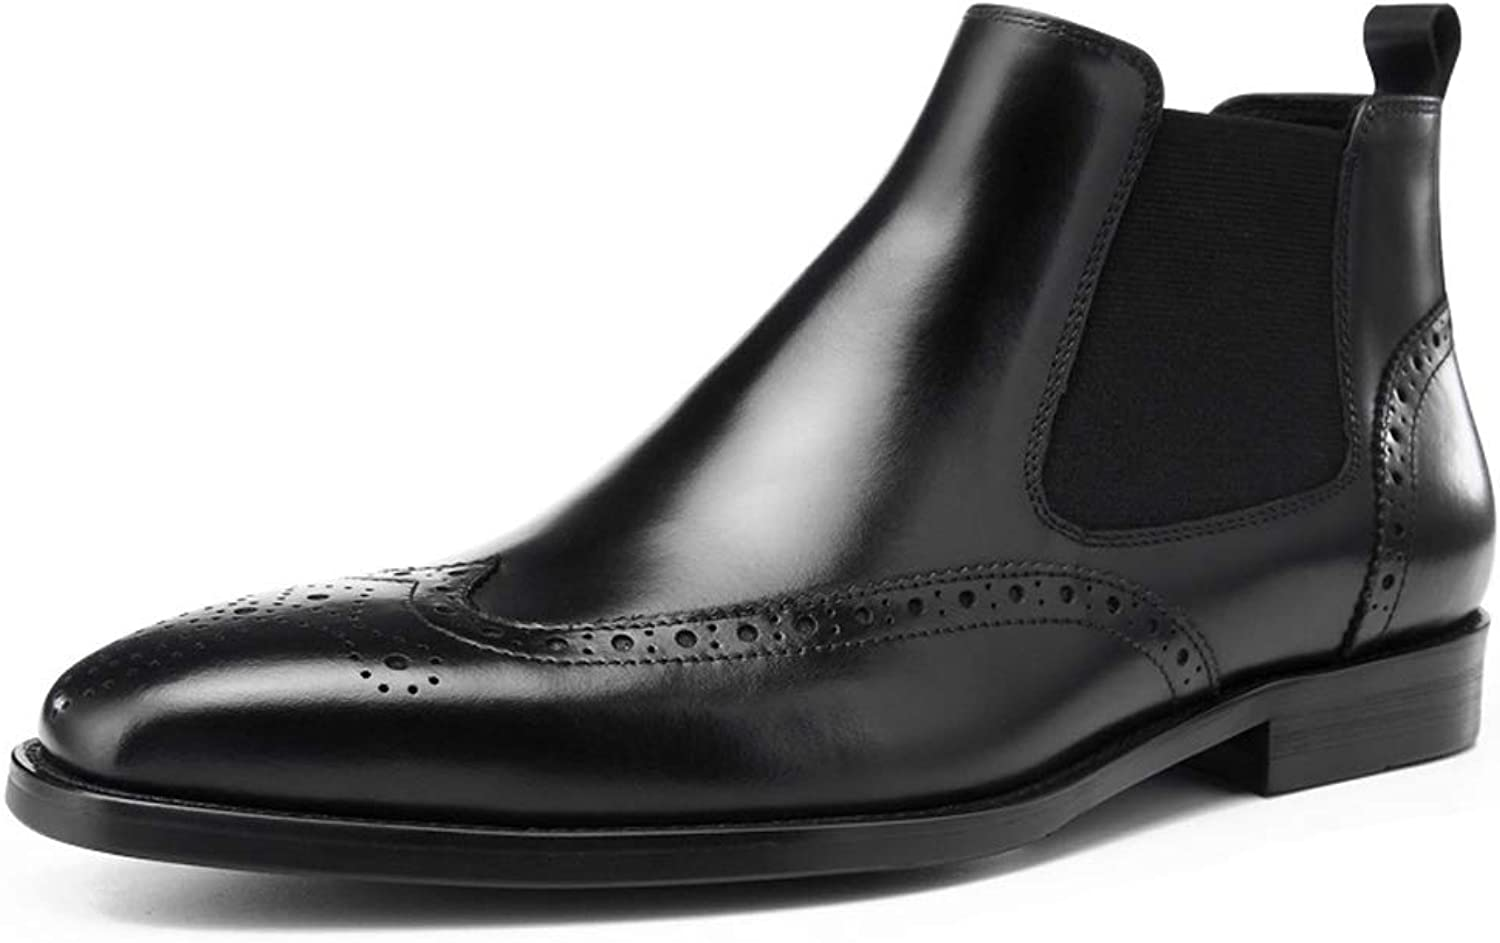 StickSeek Handcrafted Men's Chelsea shoes Formal Dress Wingtip Brogue Ankle Boot for Man